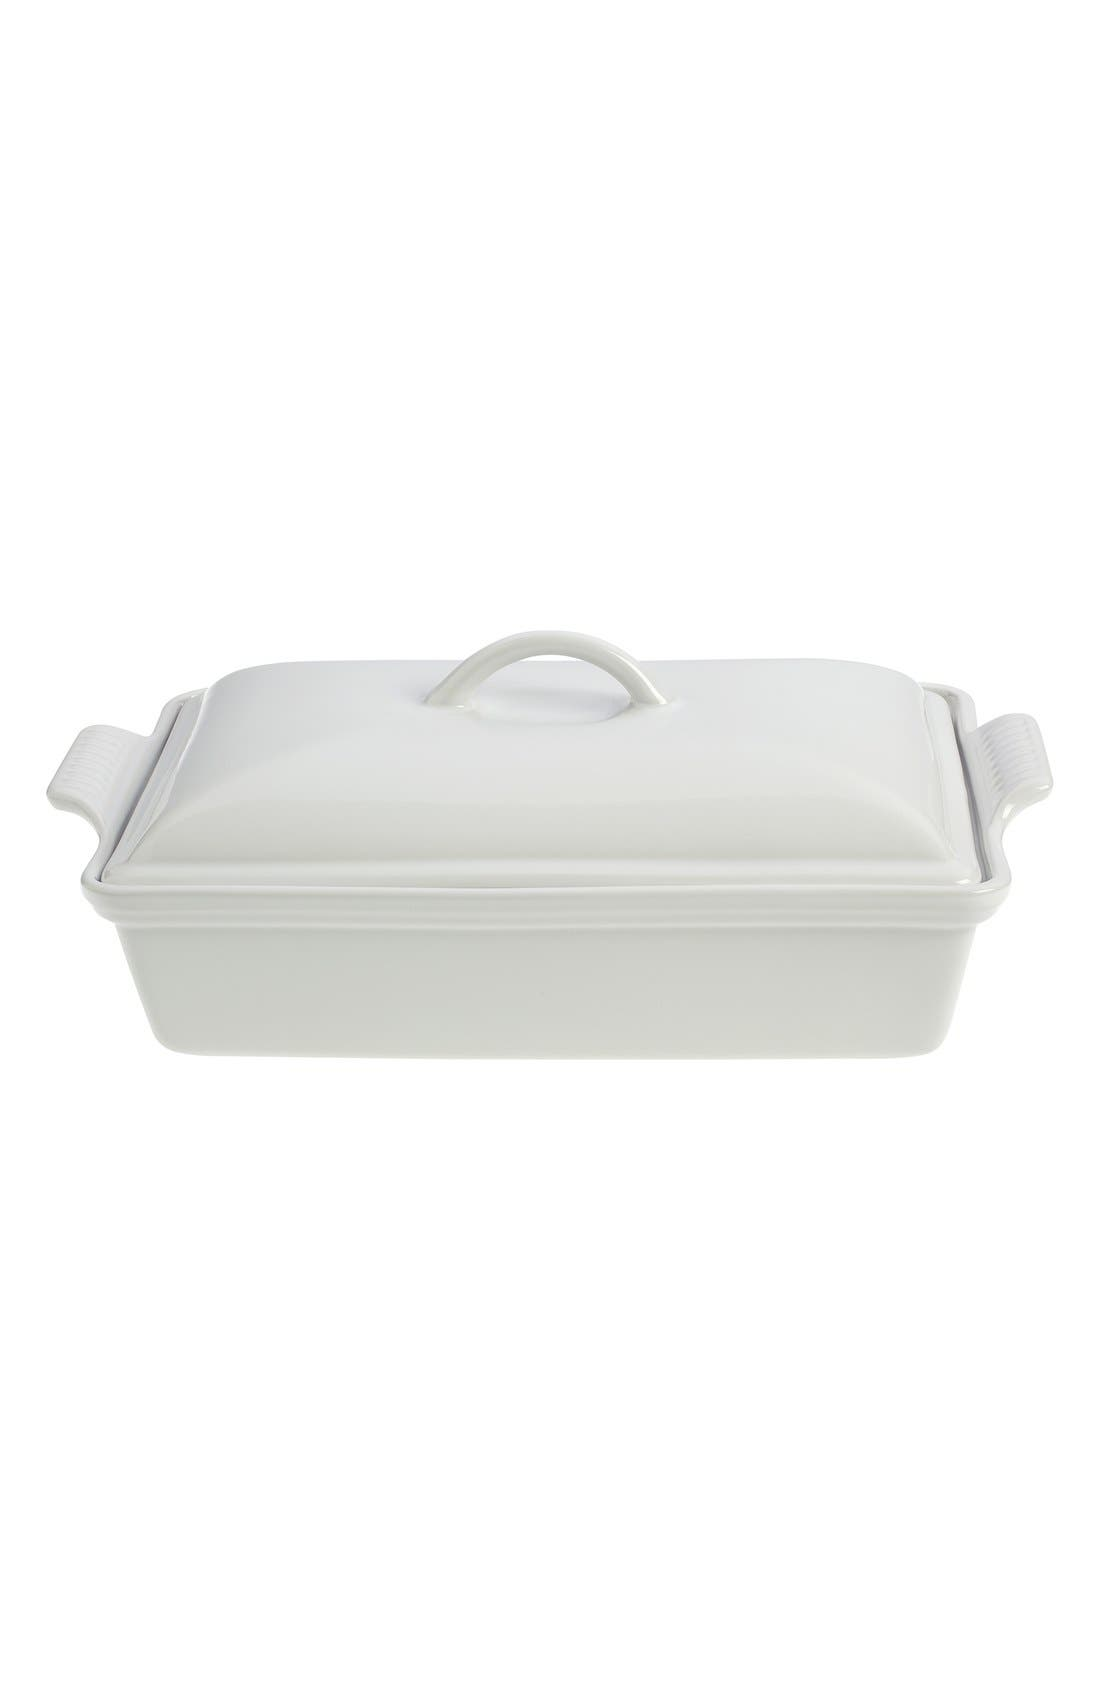 4 Quart Covered Rectangular Stoneware Casserole,                             Main thumbnail 1, color,                             WHITE